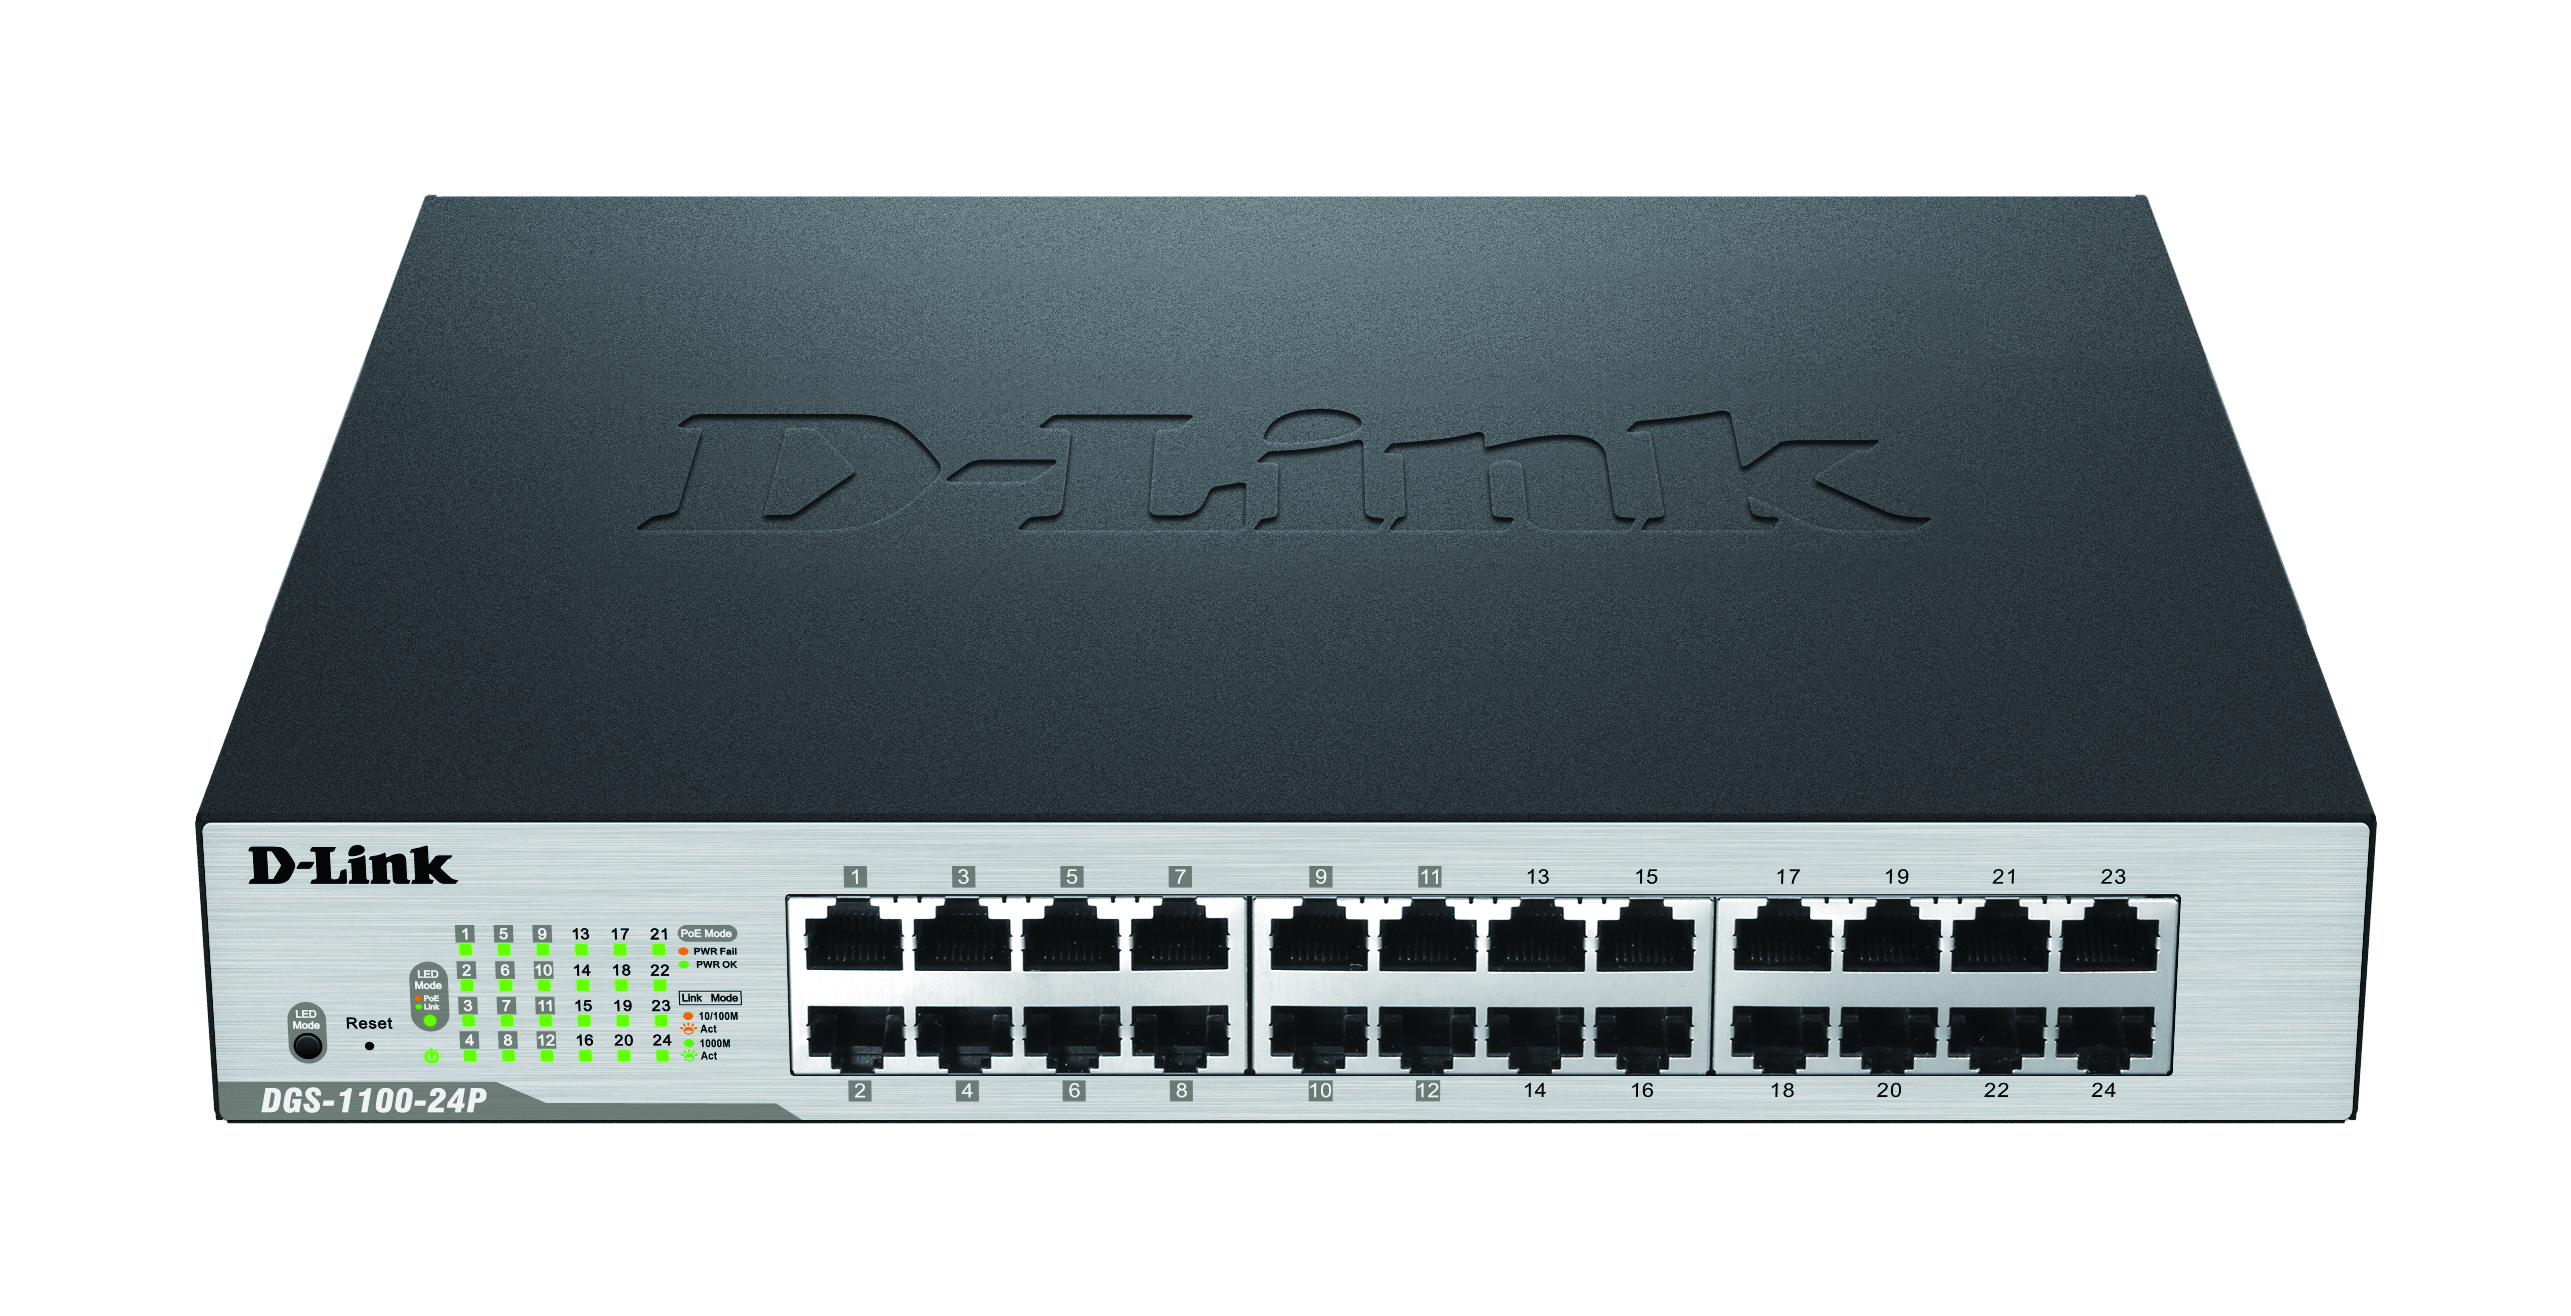 24-Port PoE Gigabit Smart Switch with 100W power budget